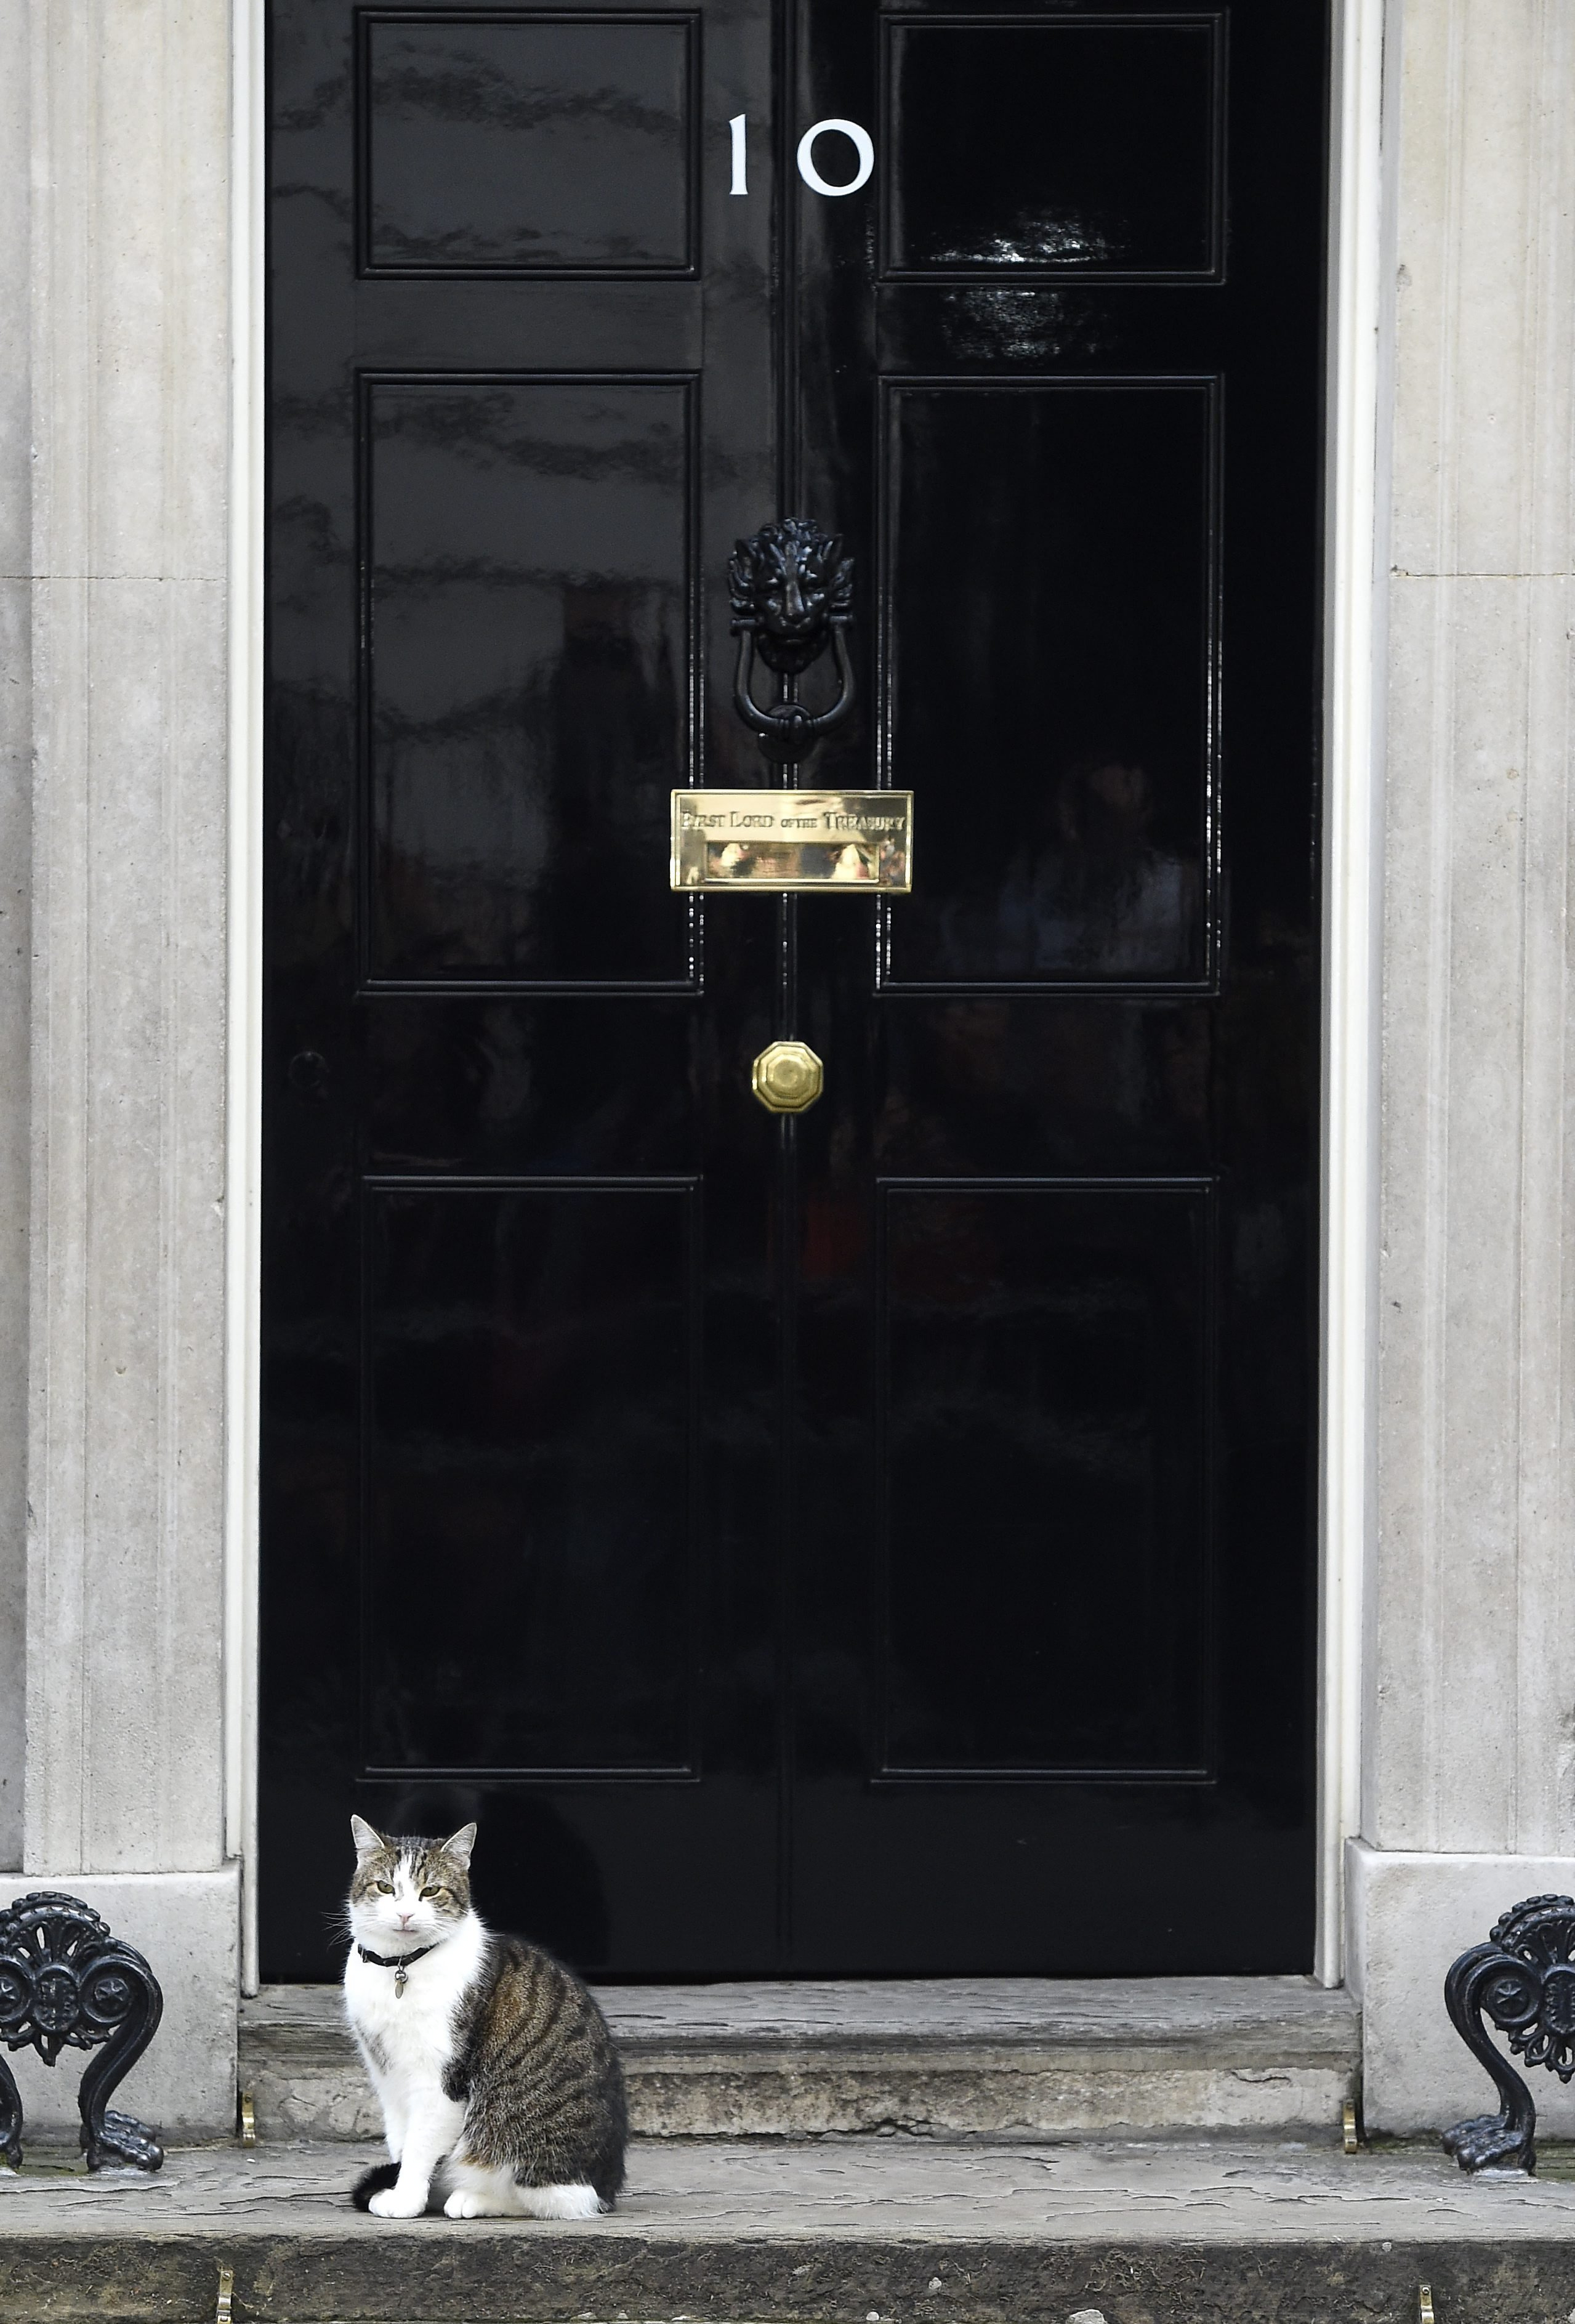 Larry, The Downing Street Cat, stands outside N10 Downing Street in London, on June 24, 2016.